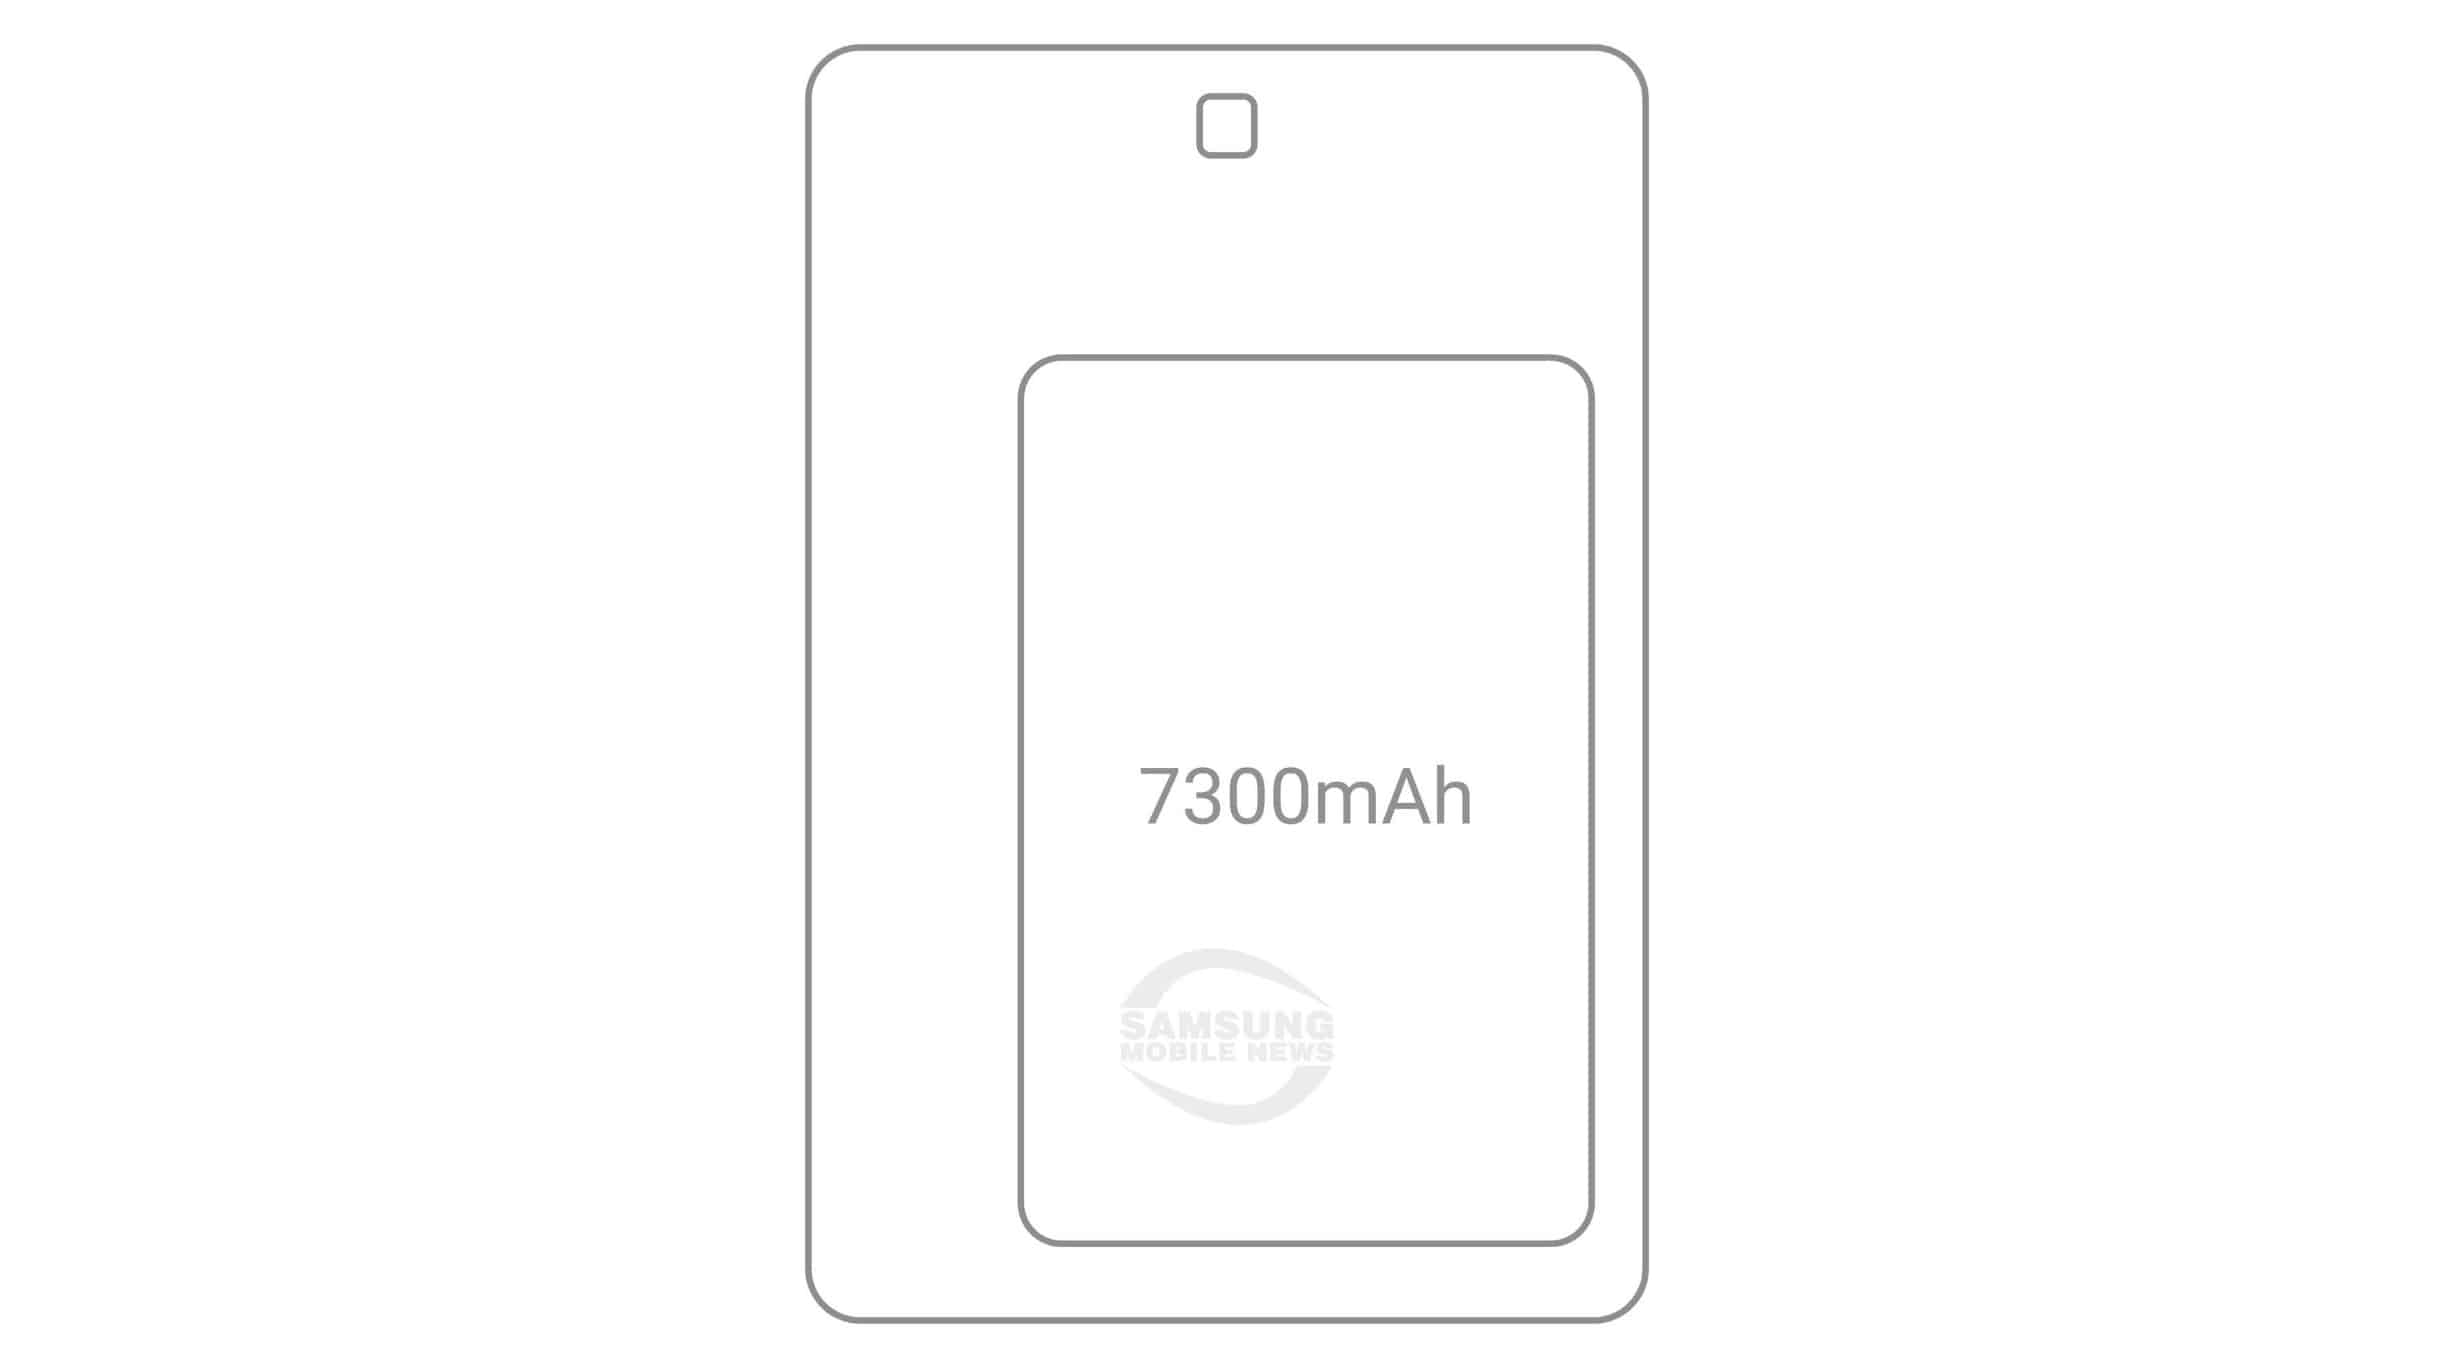 Samsung Galaxy Tab S4 To Have 7300mAh Battery, More Specs Leak